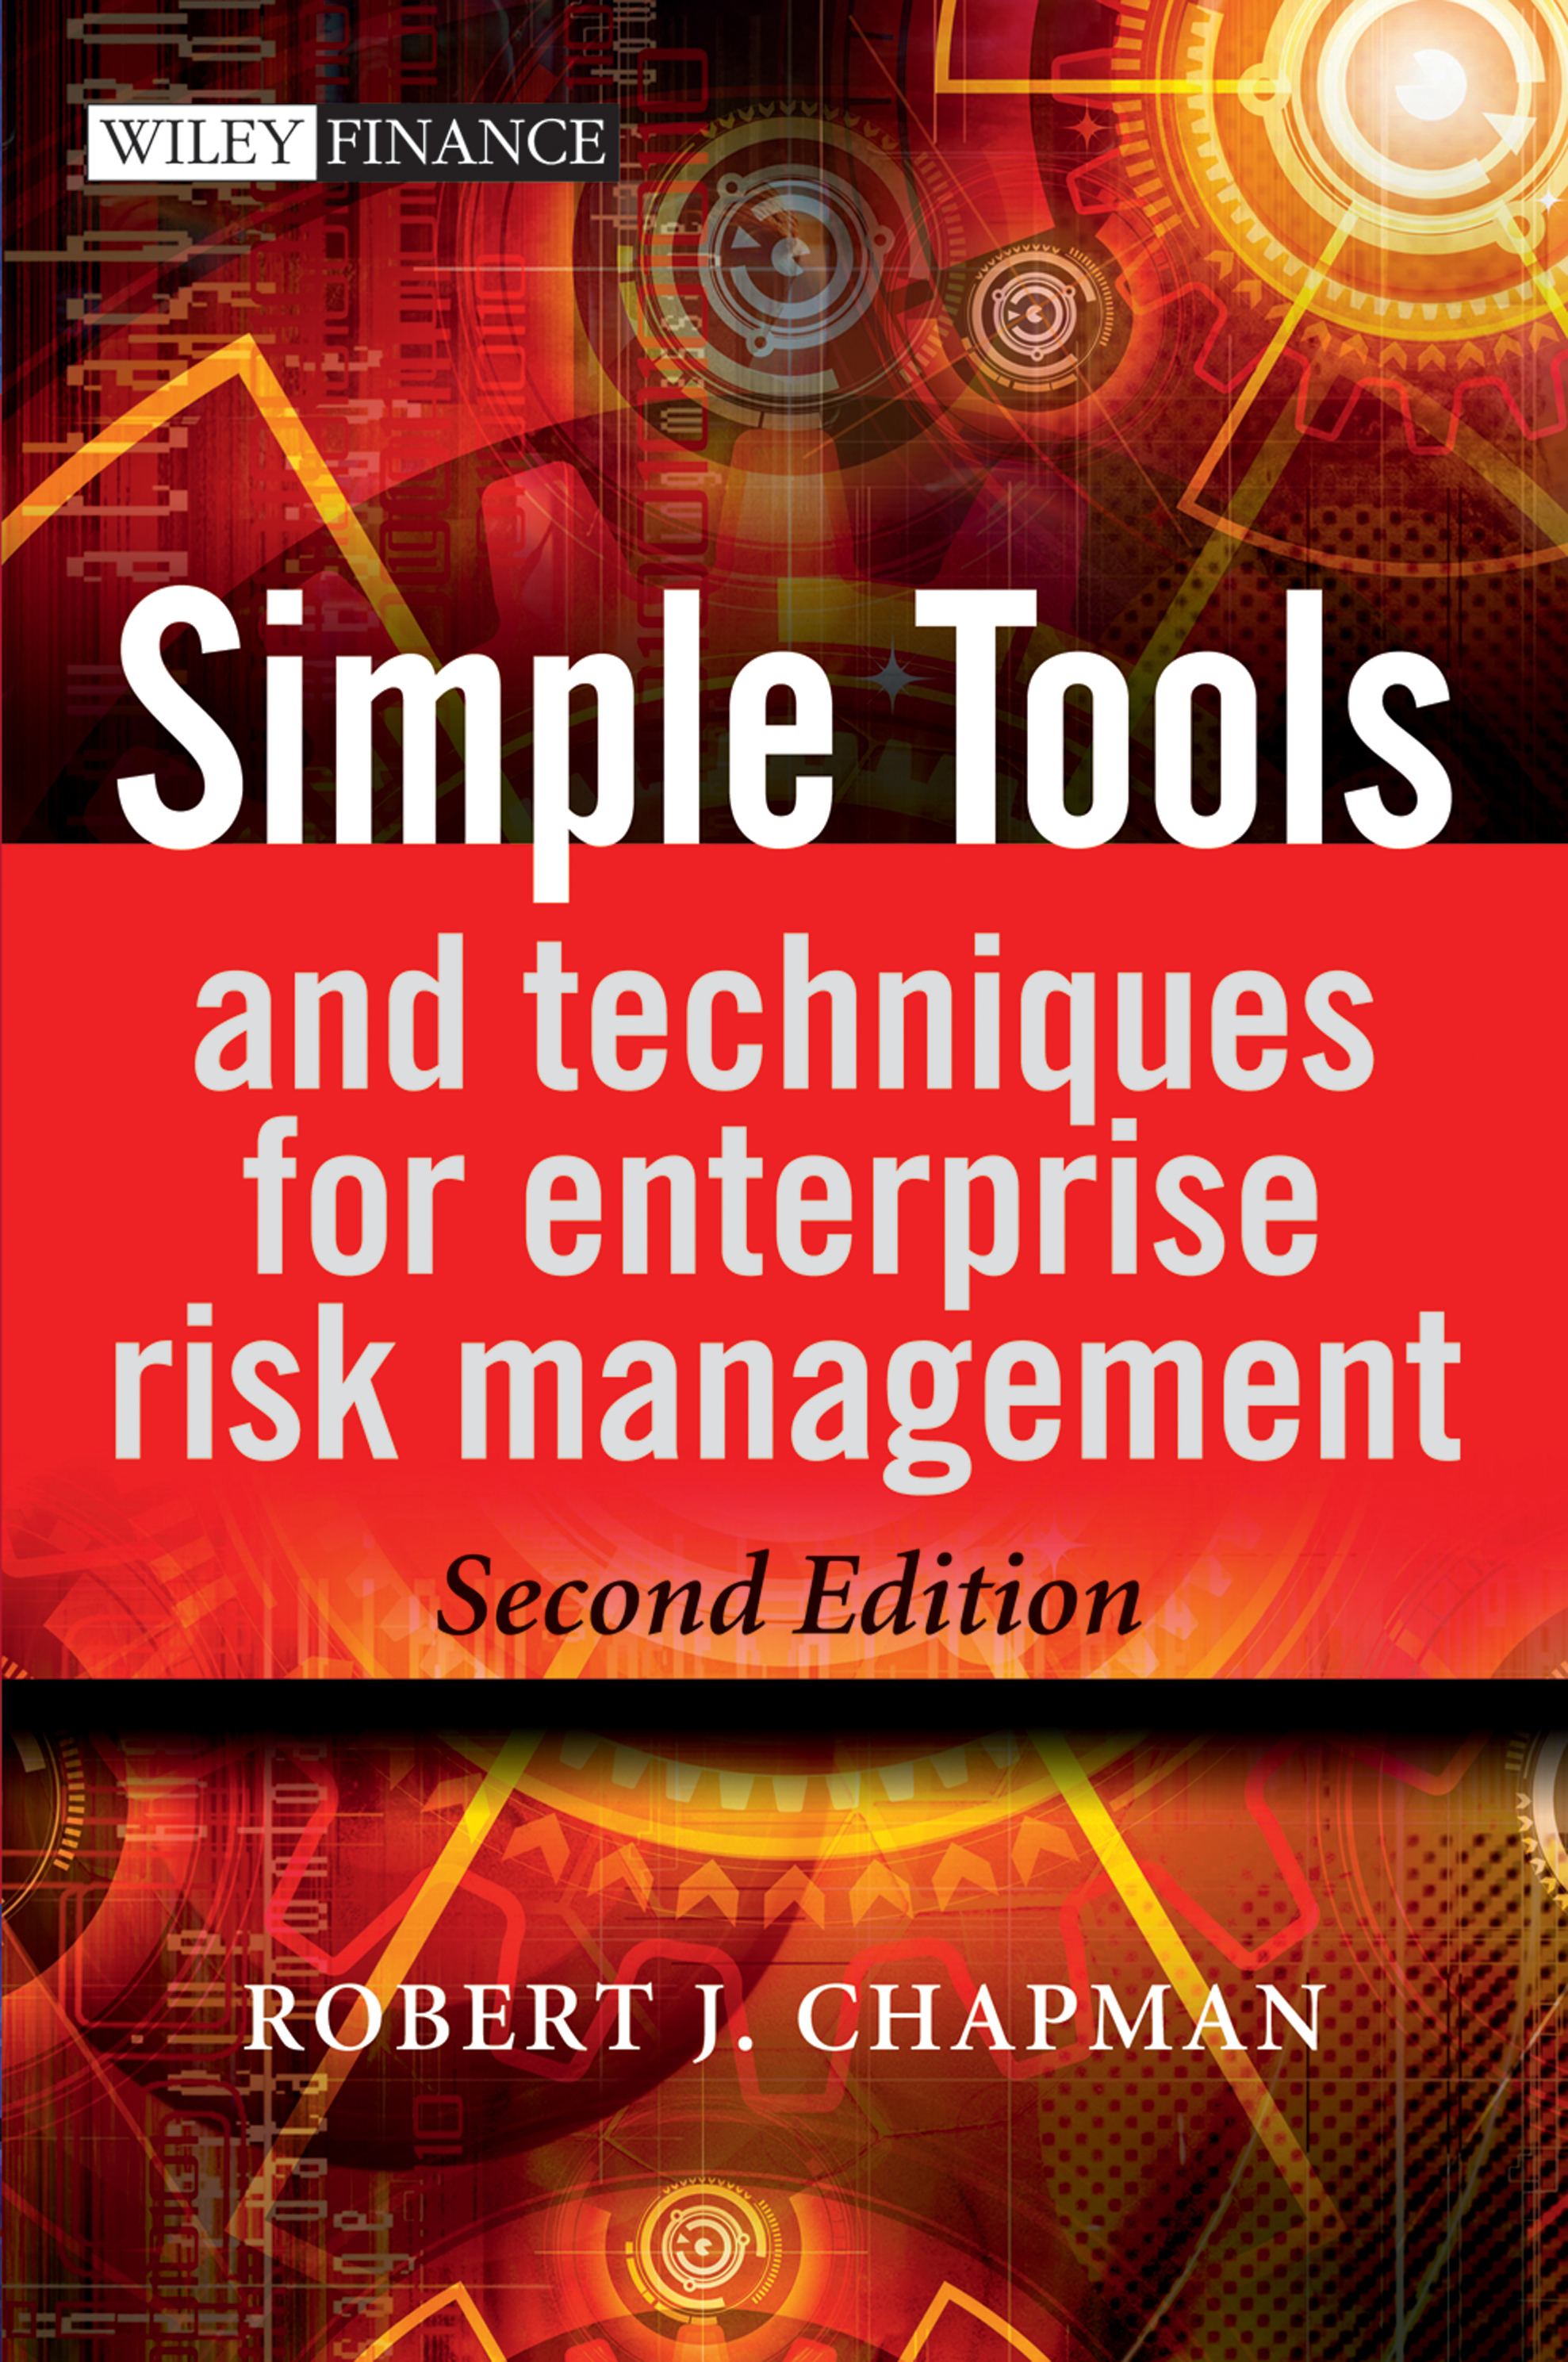 Robert Chapman J. Simple Tools and Techniques for Enterprise Risk Management